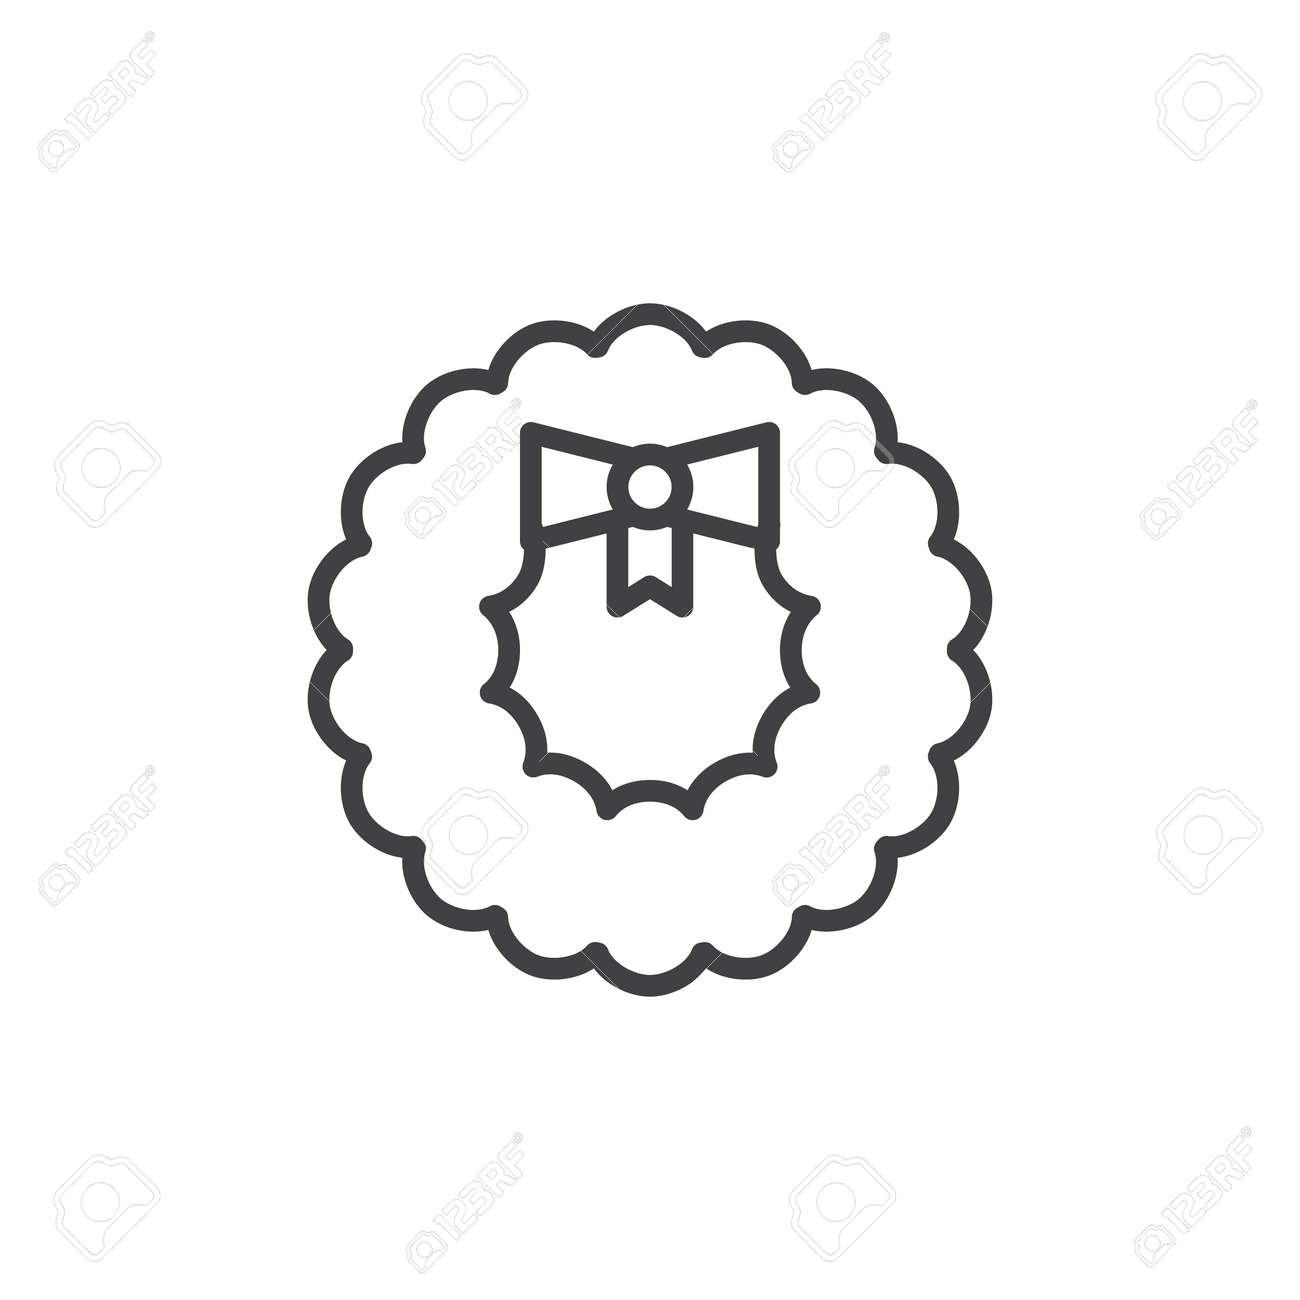 Christmas Wreath Decoration Line Icon Outline Vector Sign Linear